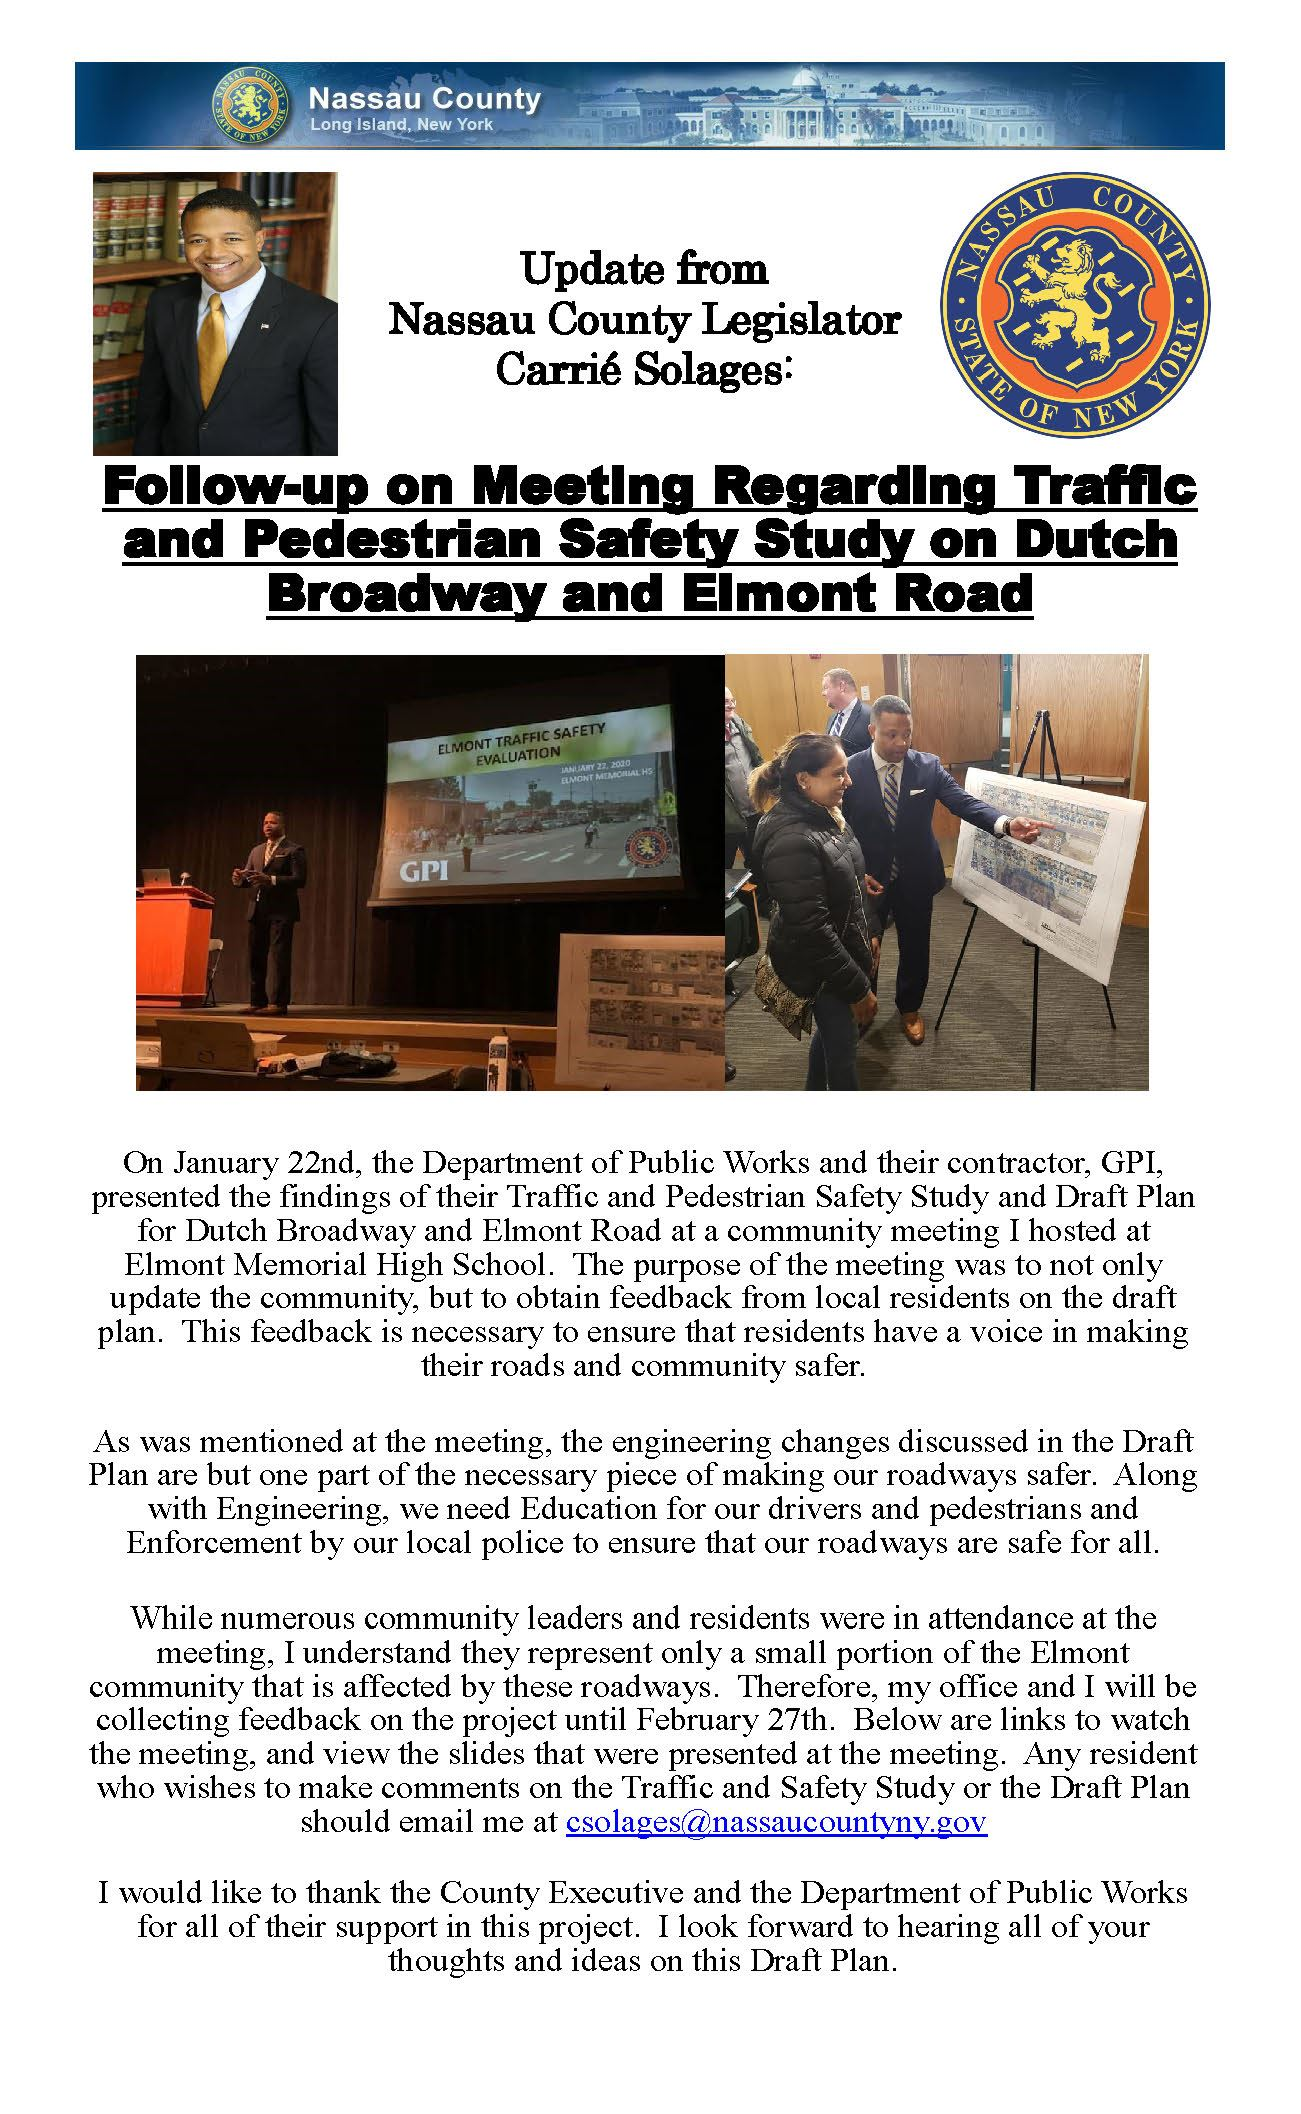 Dutch Broadway Elmont Road Meeting Followup Opens in new window